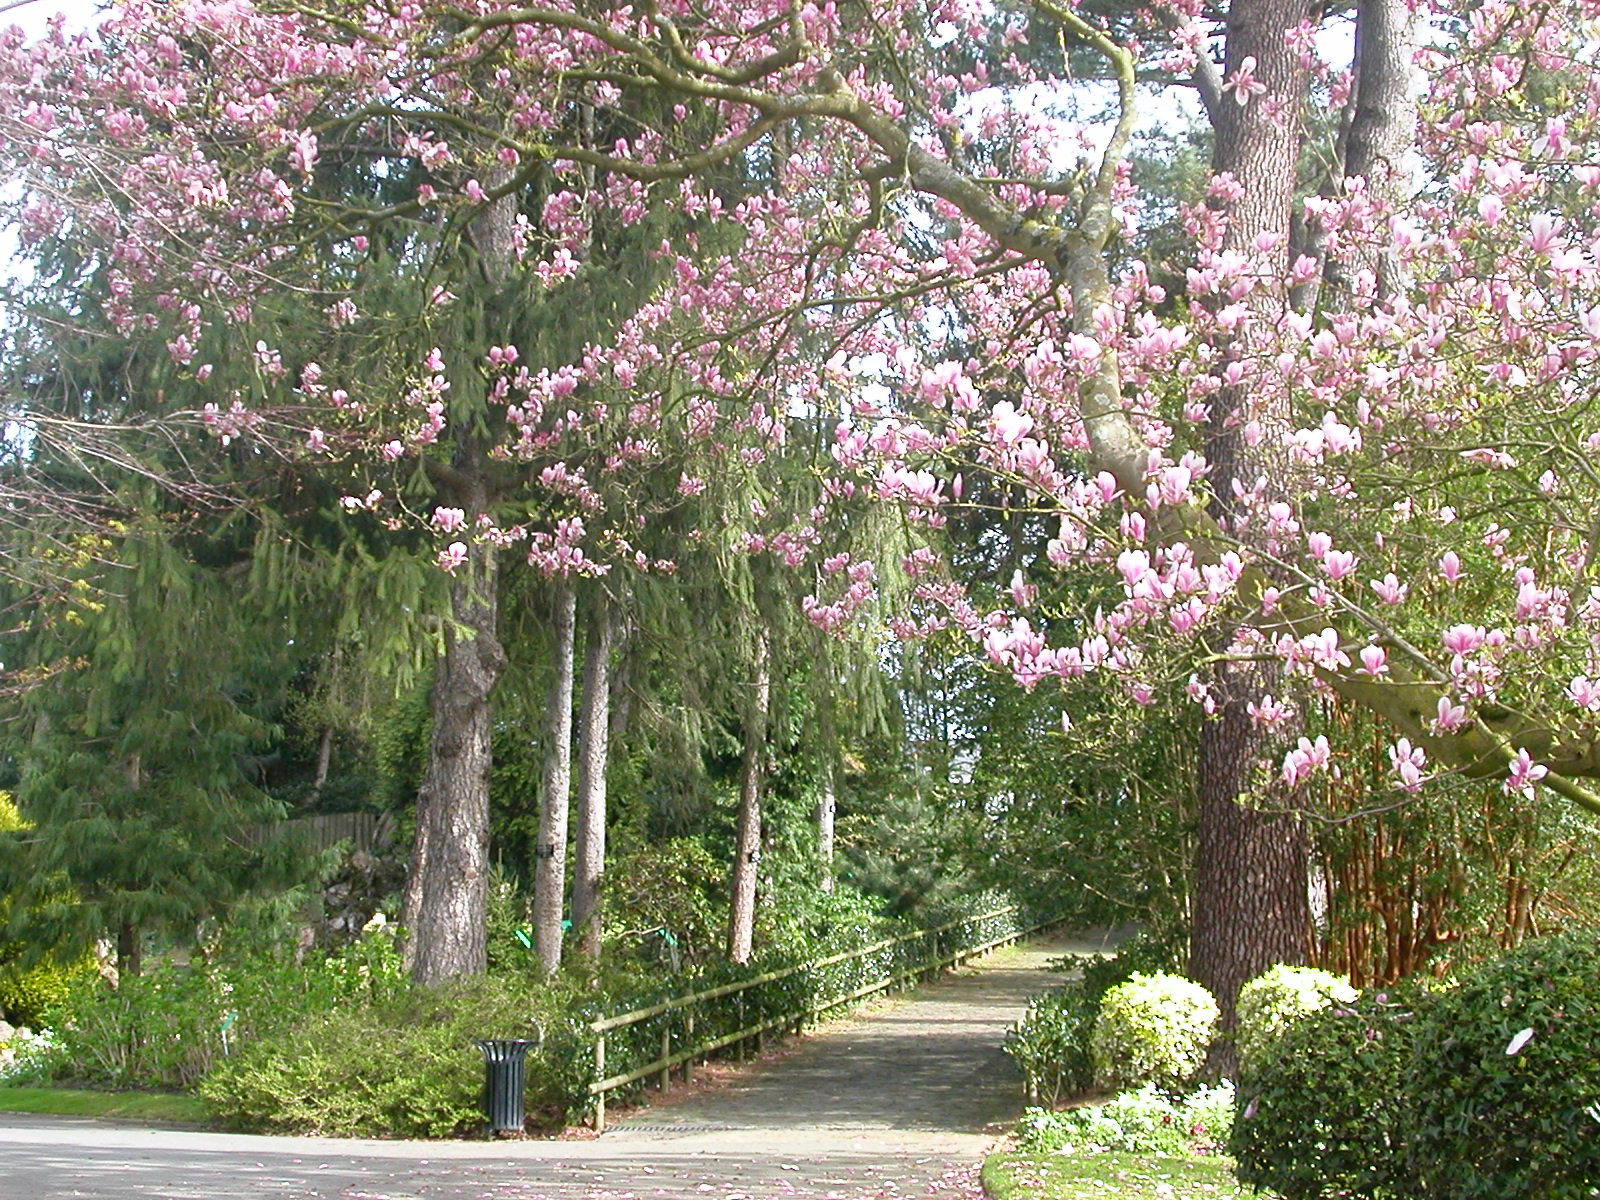 Magnolia trees with pink blooms line a bridge